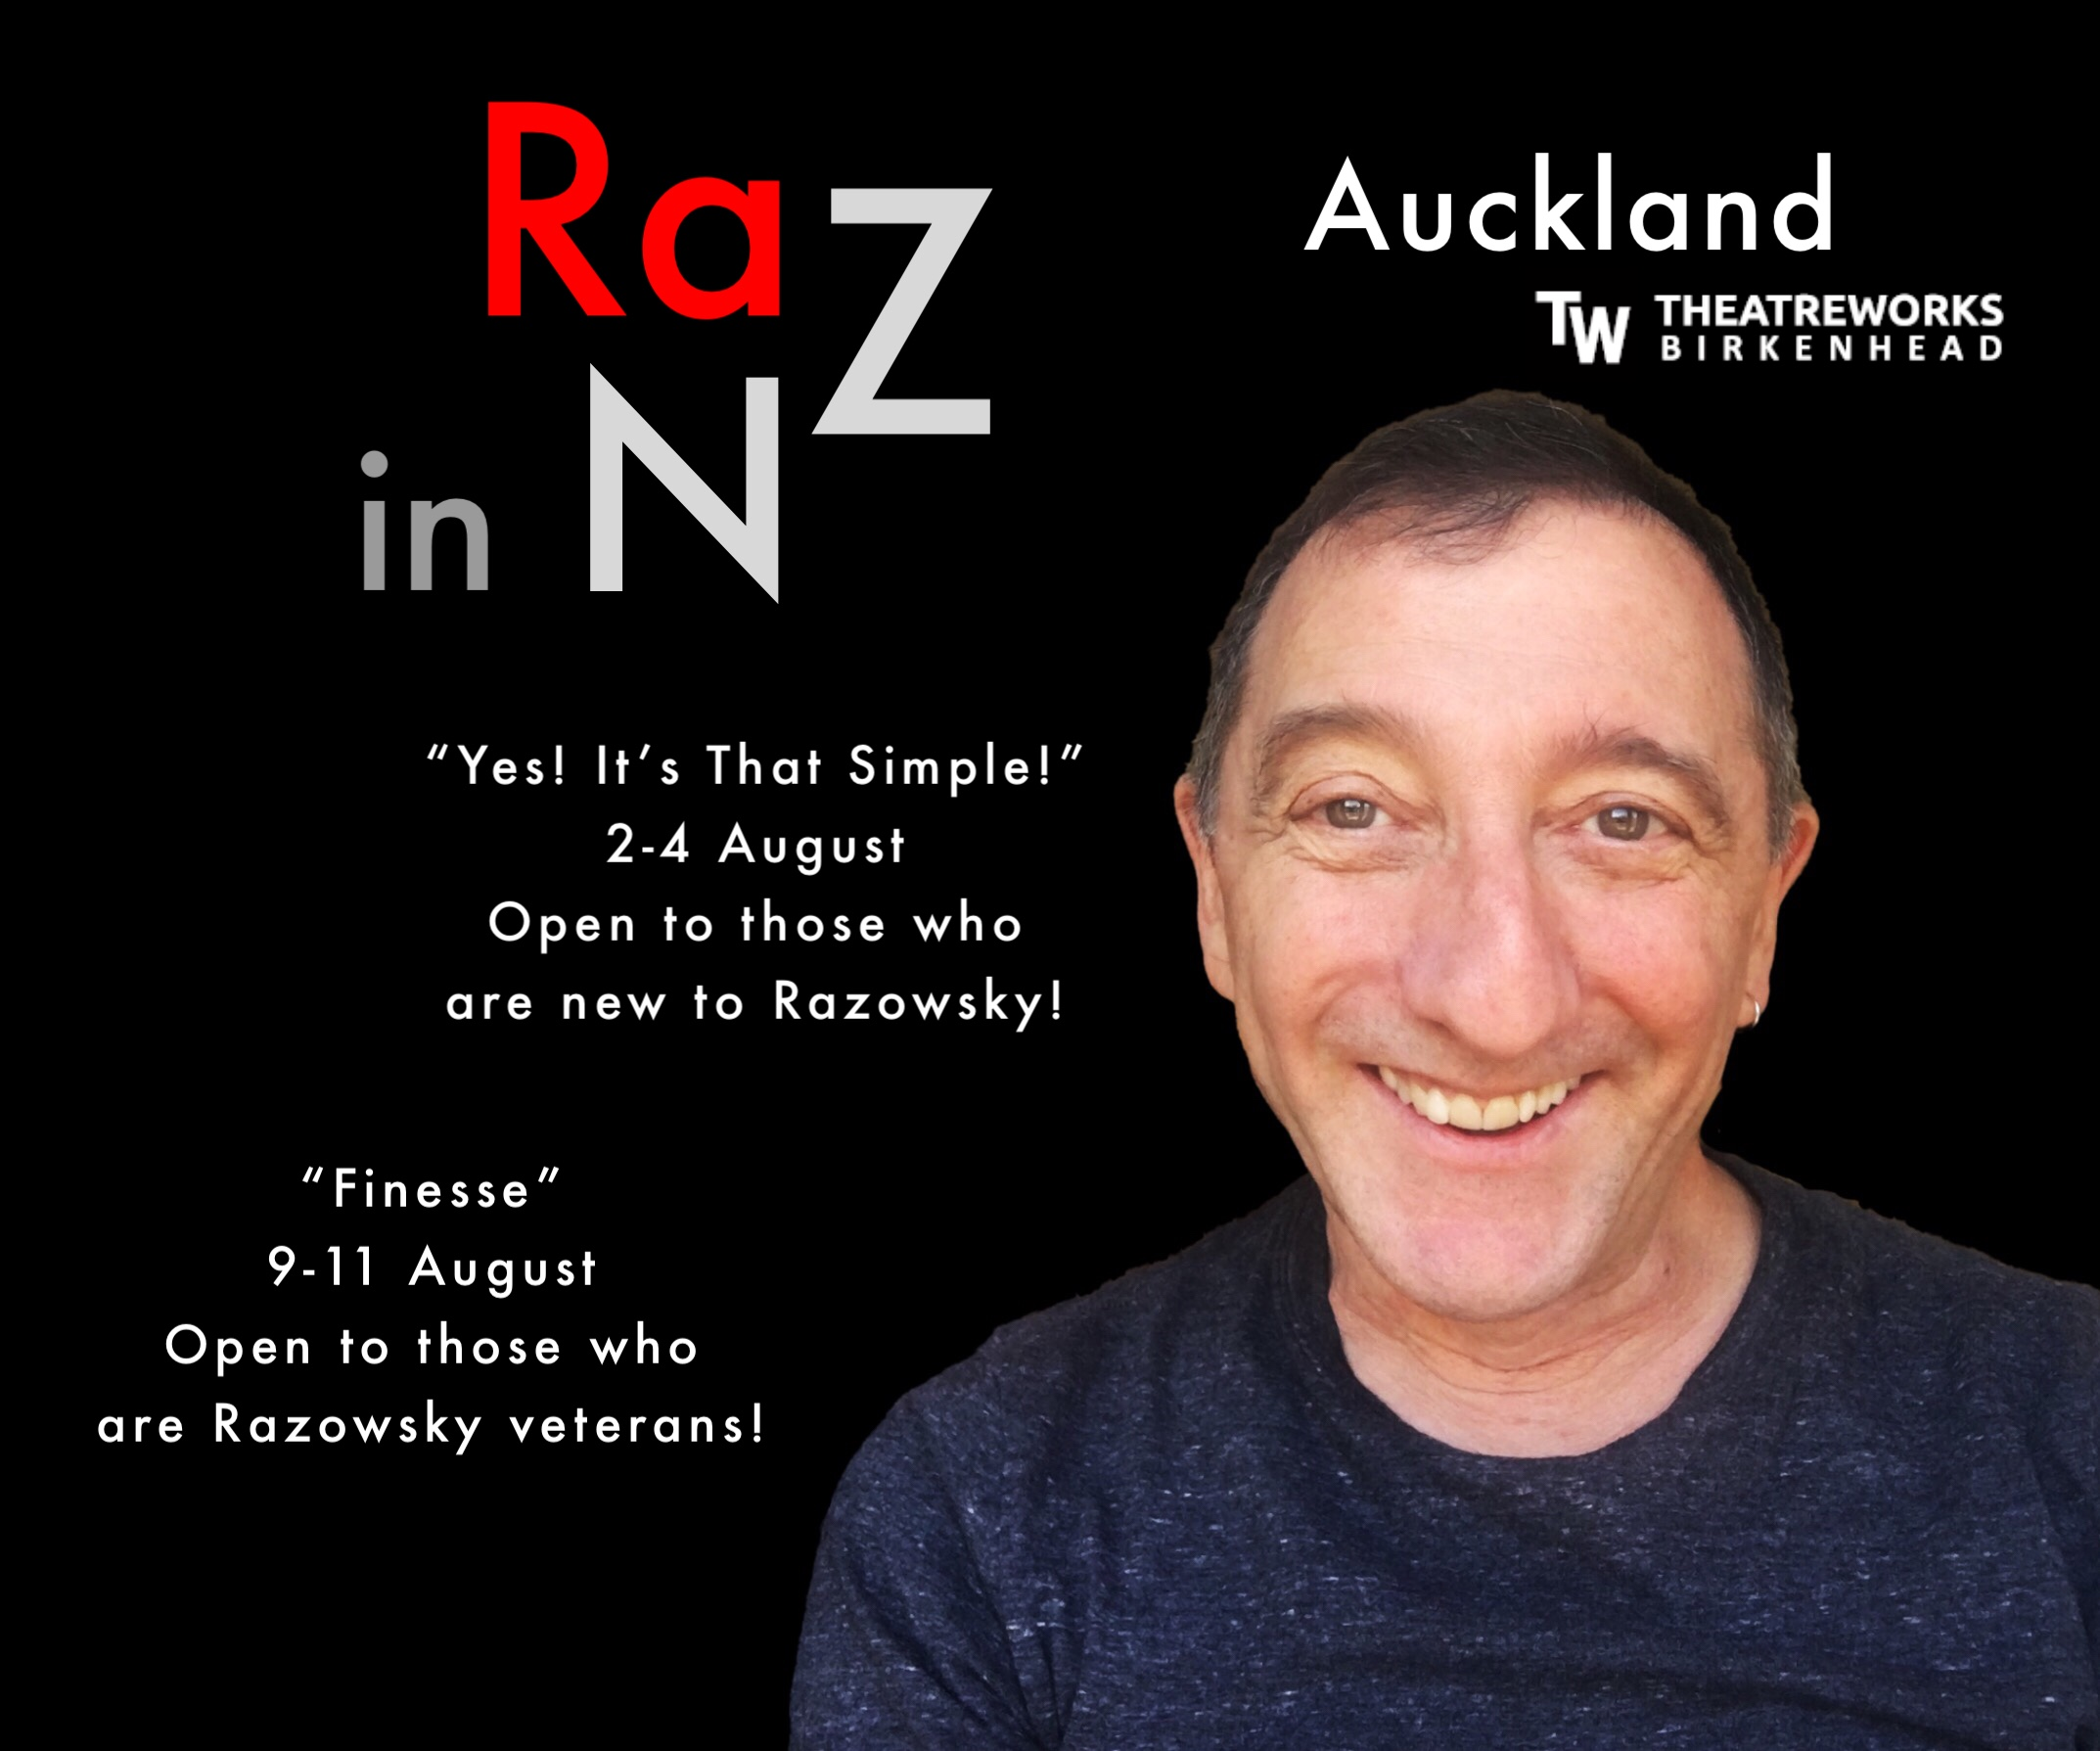 I'm coming back, Auckland. 2 weekend workshops and performances designed for you.